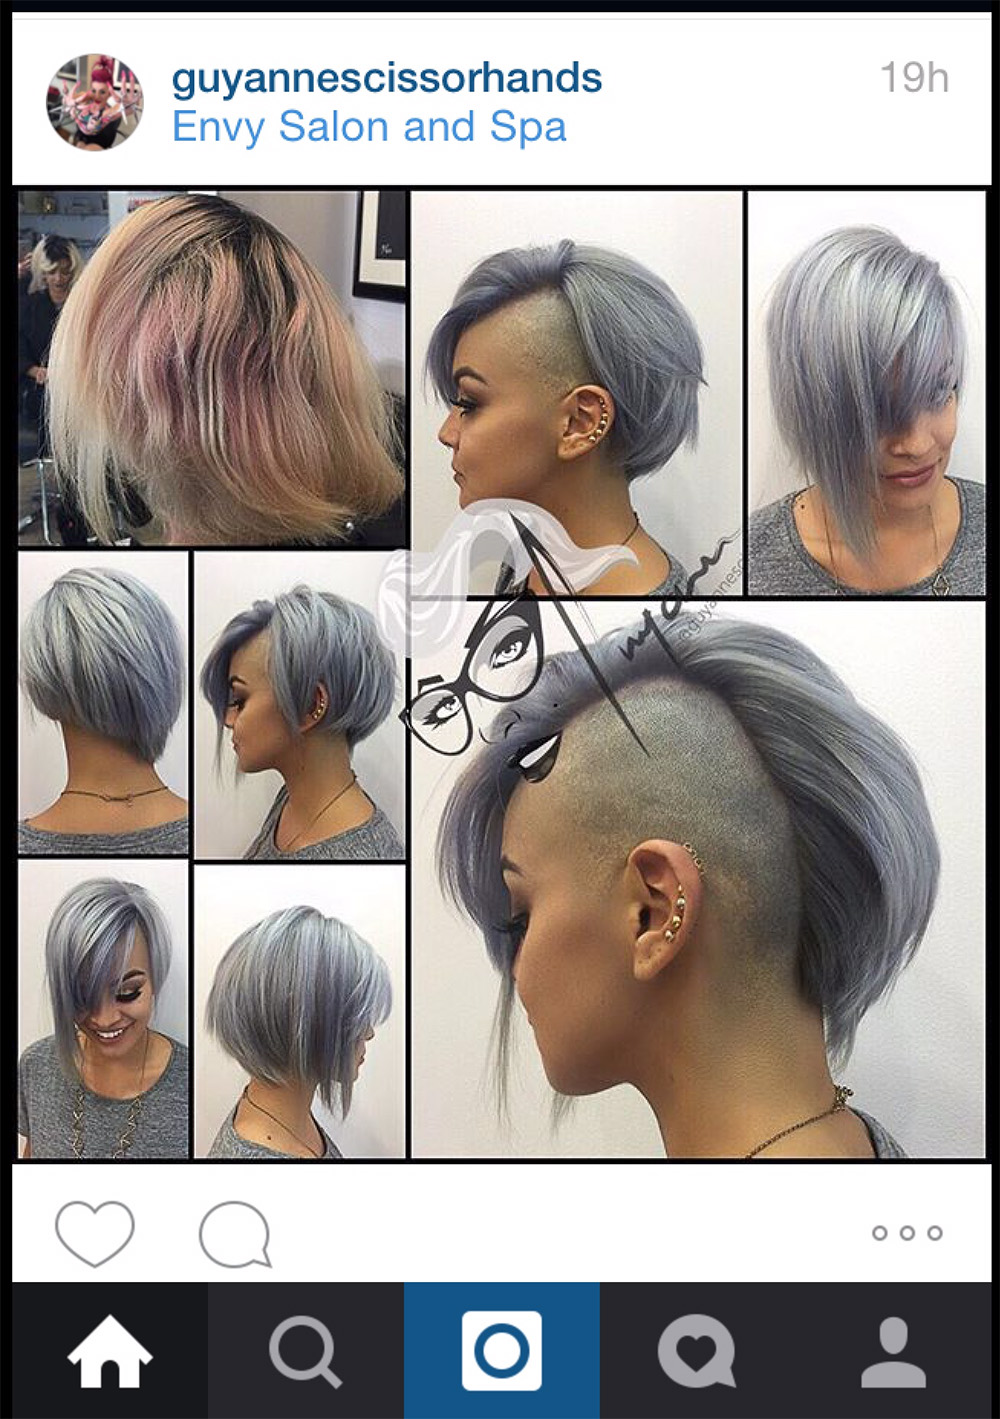 Screen cap of Guyanne Scissorhands' Instagram showing a series of photos of a client with hair dyed silver and cut in a dramatic, asymmetric, angular undercut